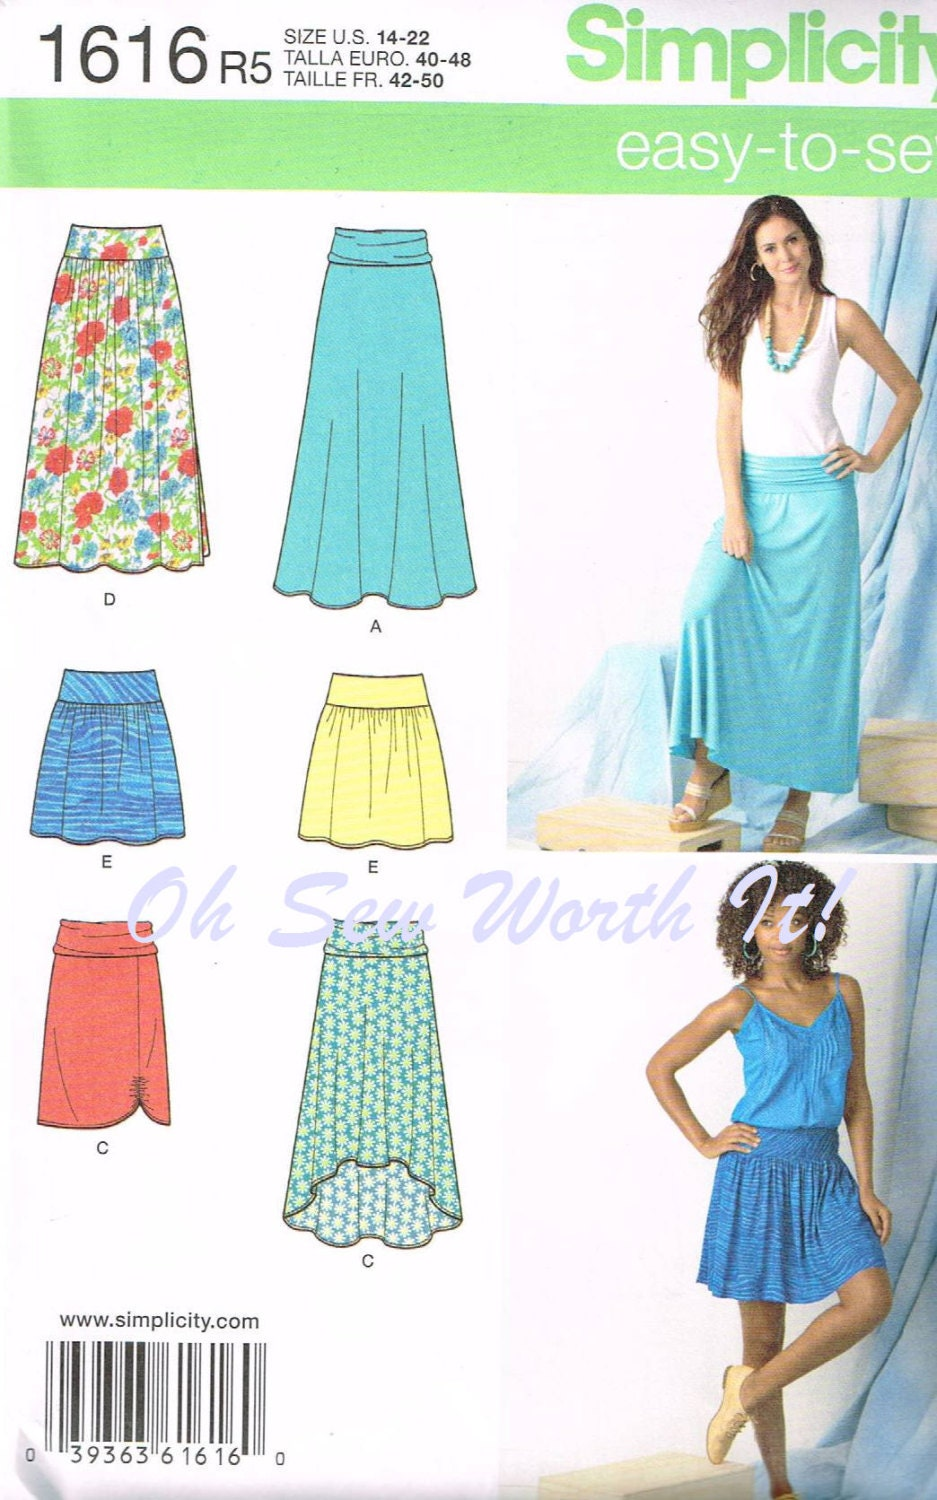 Sewing Patterns For Knits : Simplicity 1616 Commercial Sewing Pattern Misses by OhSewWorthIt